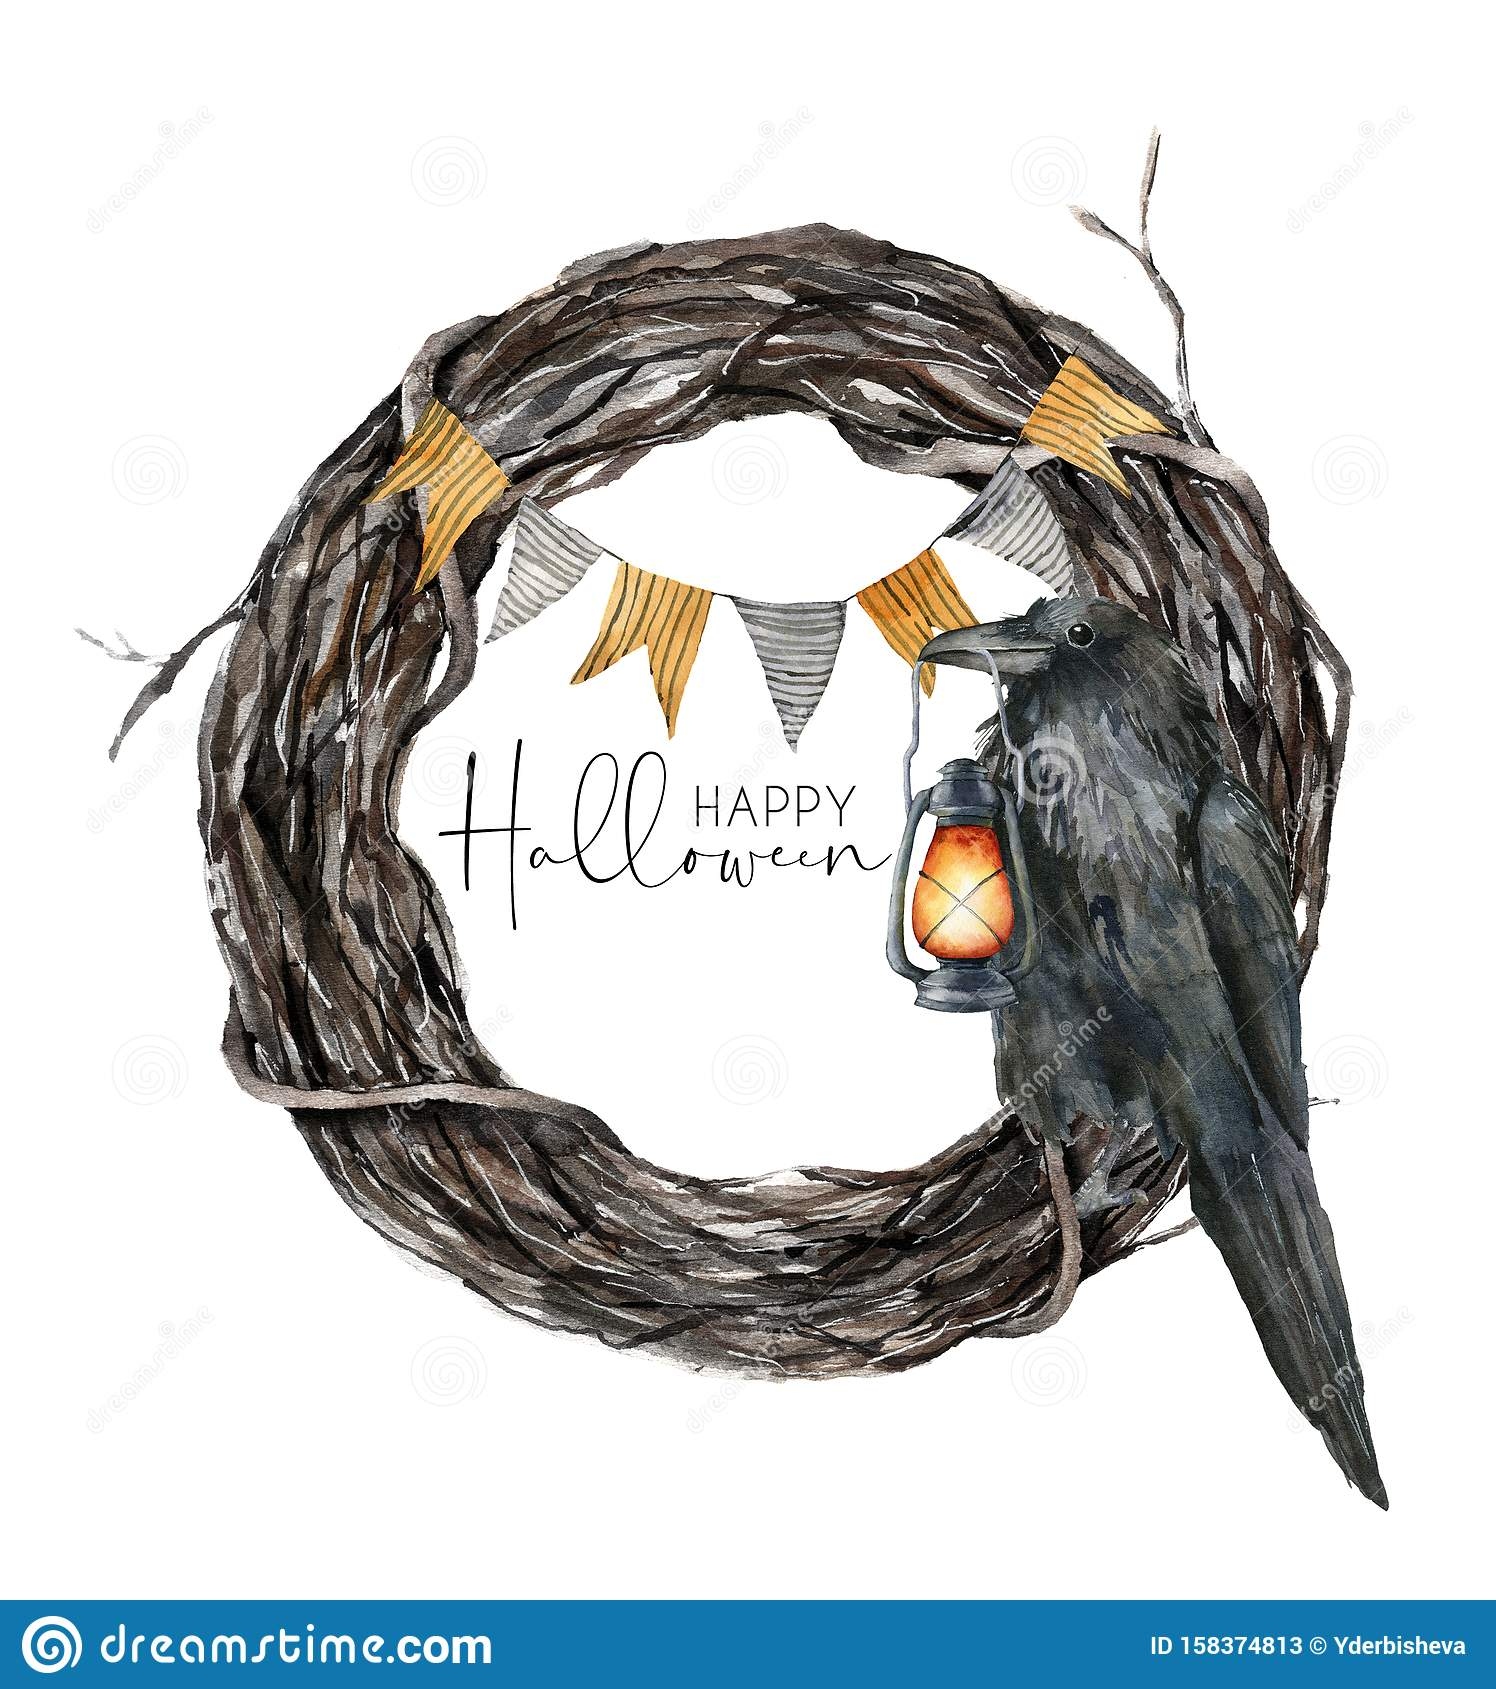 Watercolor Halloween Wreath With Crow Hand Painted Holiday Template With Flag Garland And Lantern Isolated On White Stock Illustration Illustration Of Invitation Border 158374813